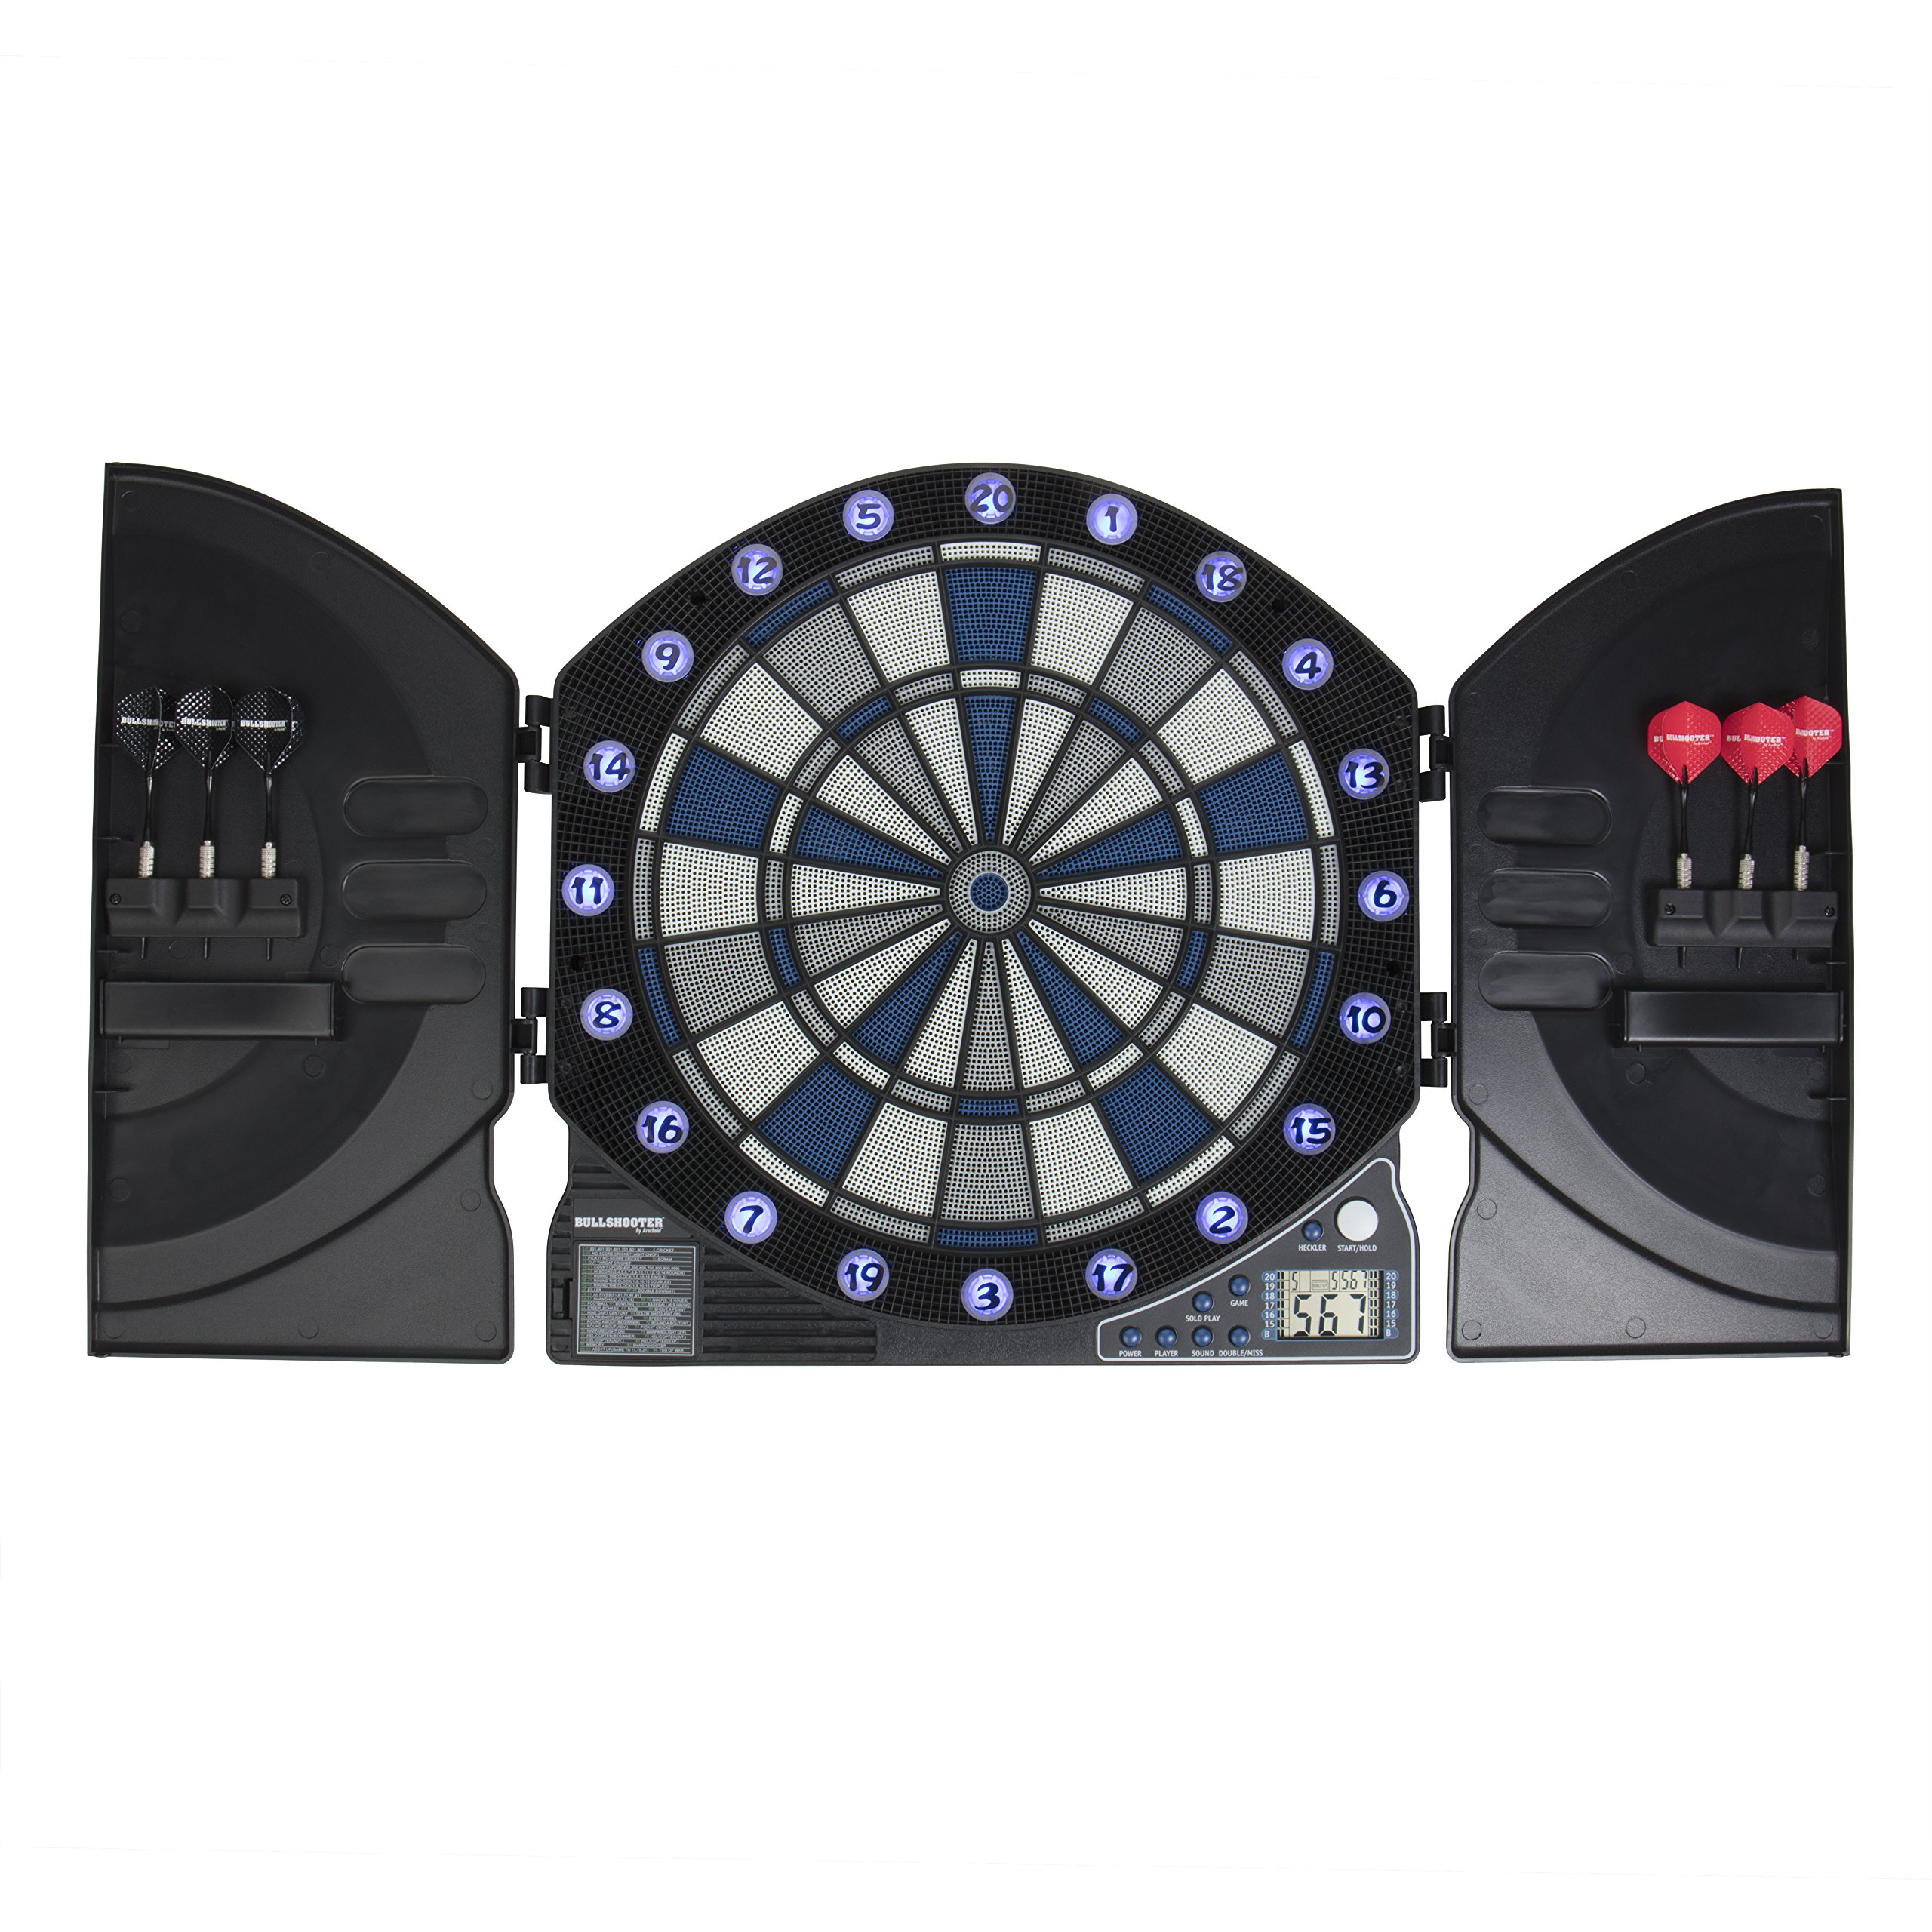 Bullshooter by Arachnid Illuminator 3.0 Light Up Dartboard Cabinet Set